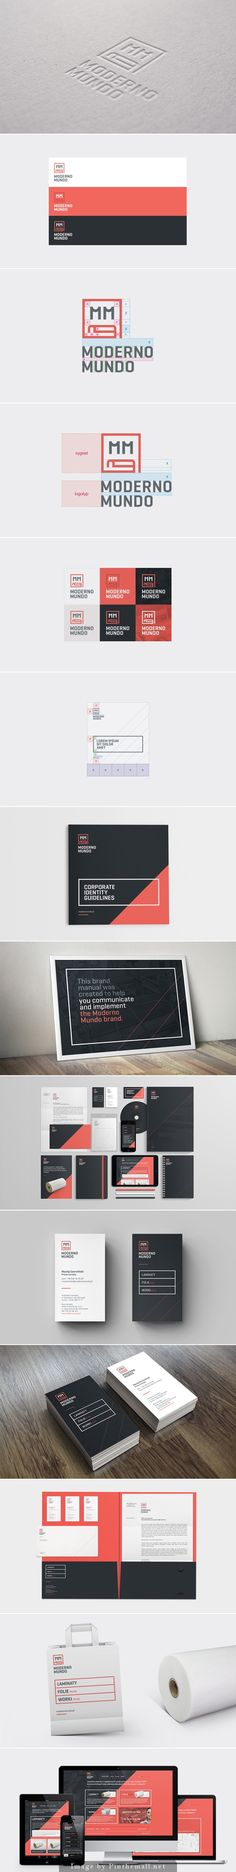 Moderno Mundo - Branding & RWD... - a grouped images picture - Pin Them All